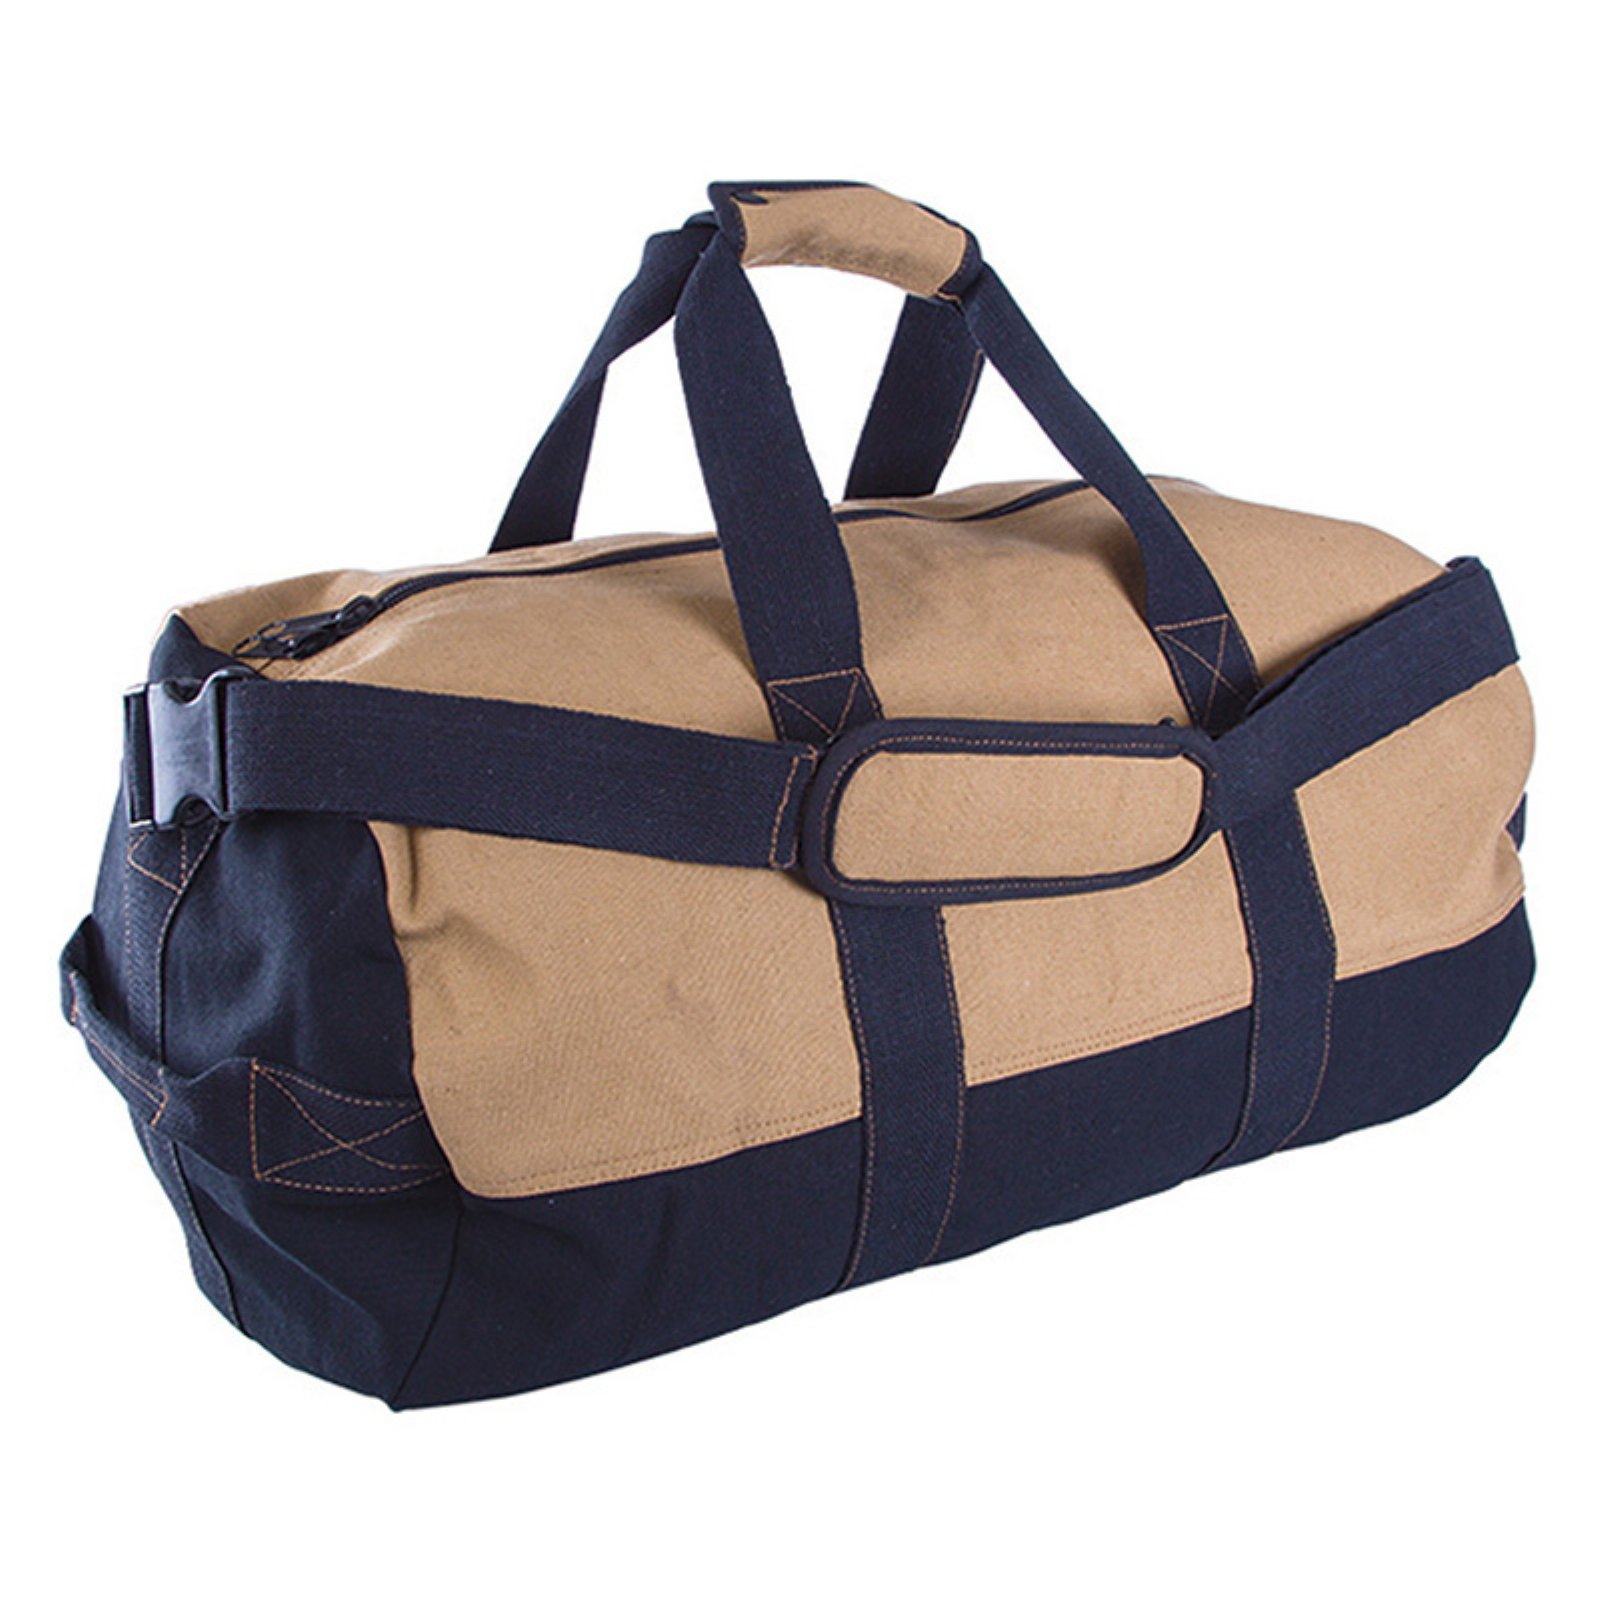 "Duffle Bag with Zipper, 2-Tone, 14"" x 24"""